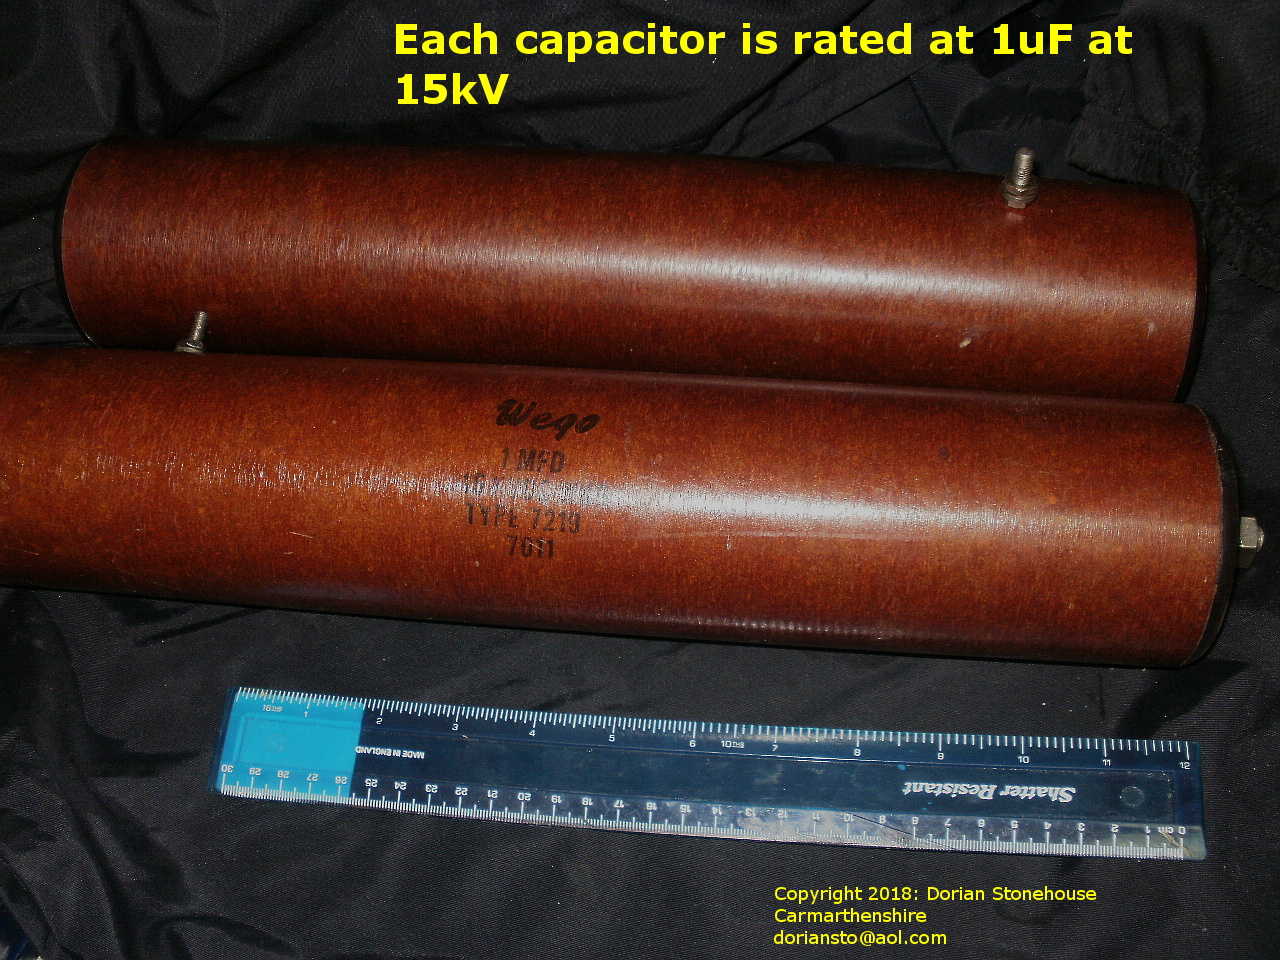 Huge capacitors - over a foot long!